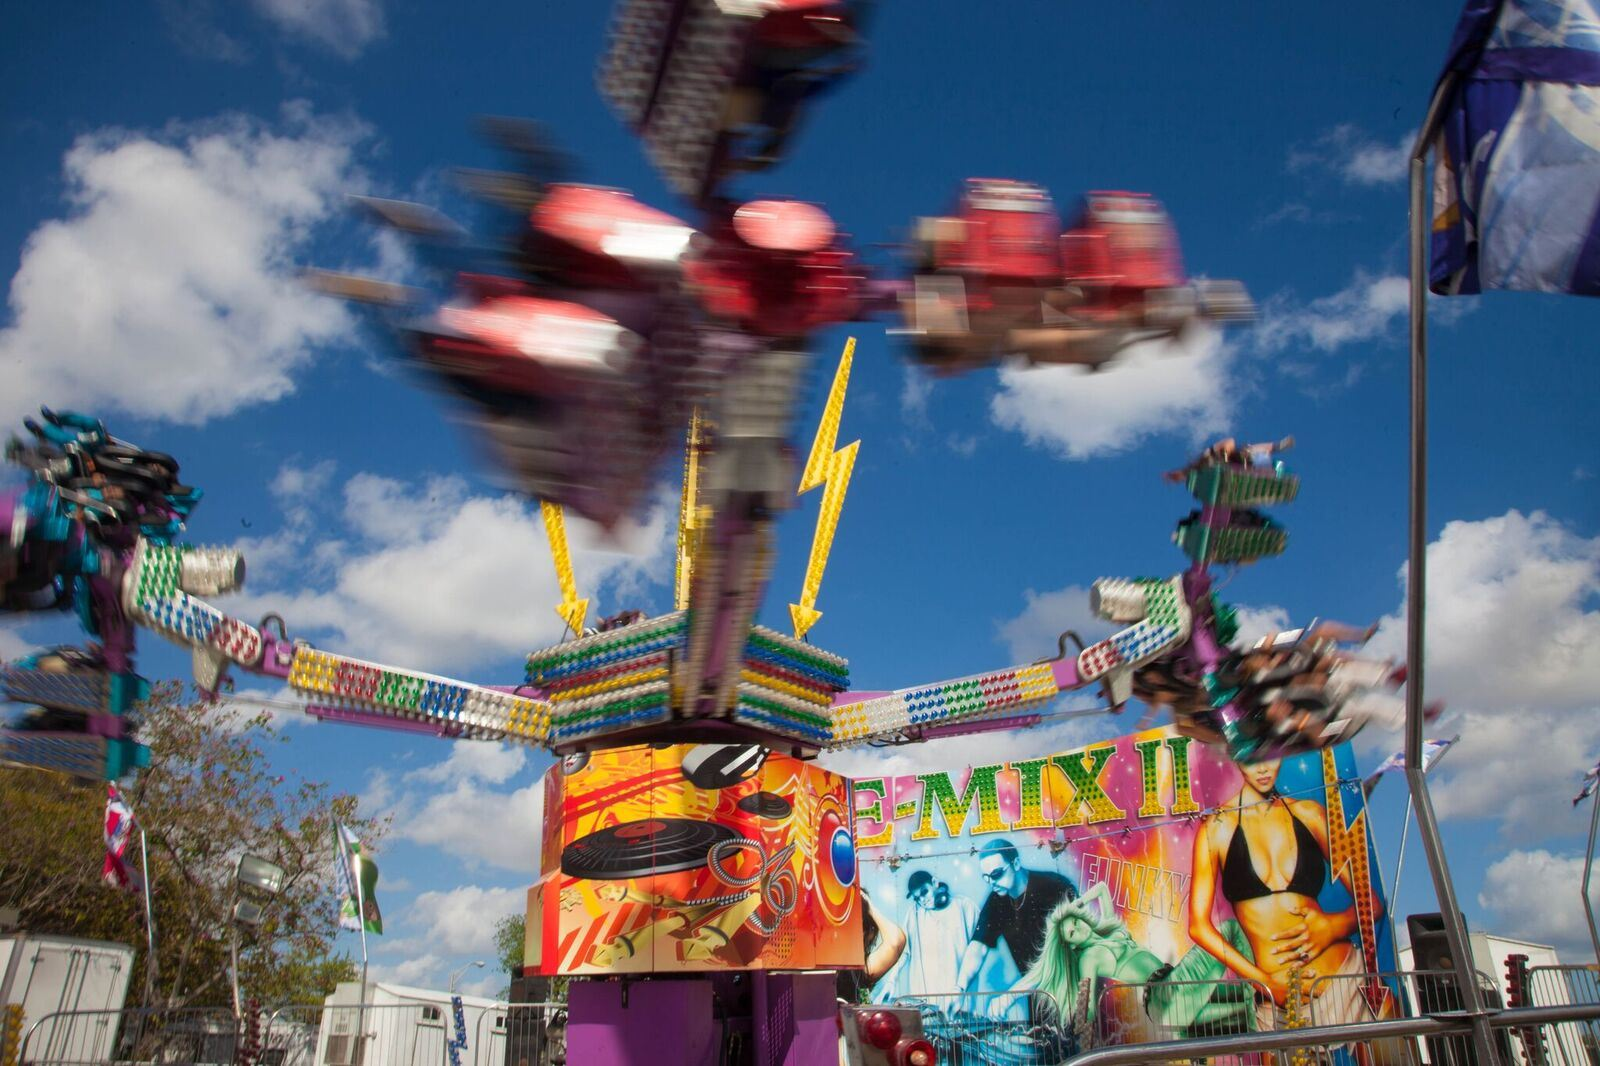 Carnival - North American Midway Entertainment